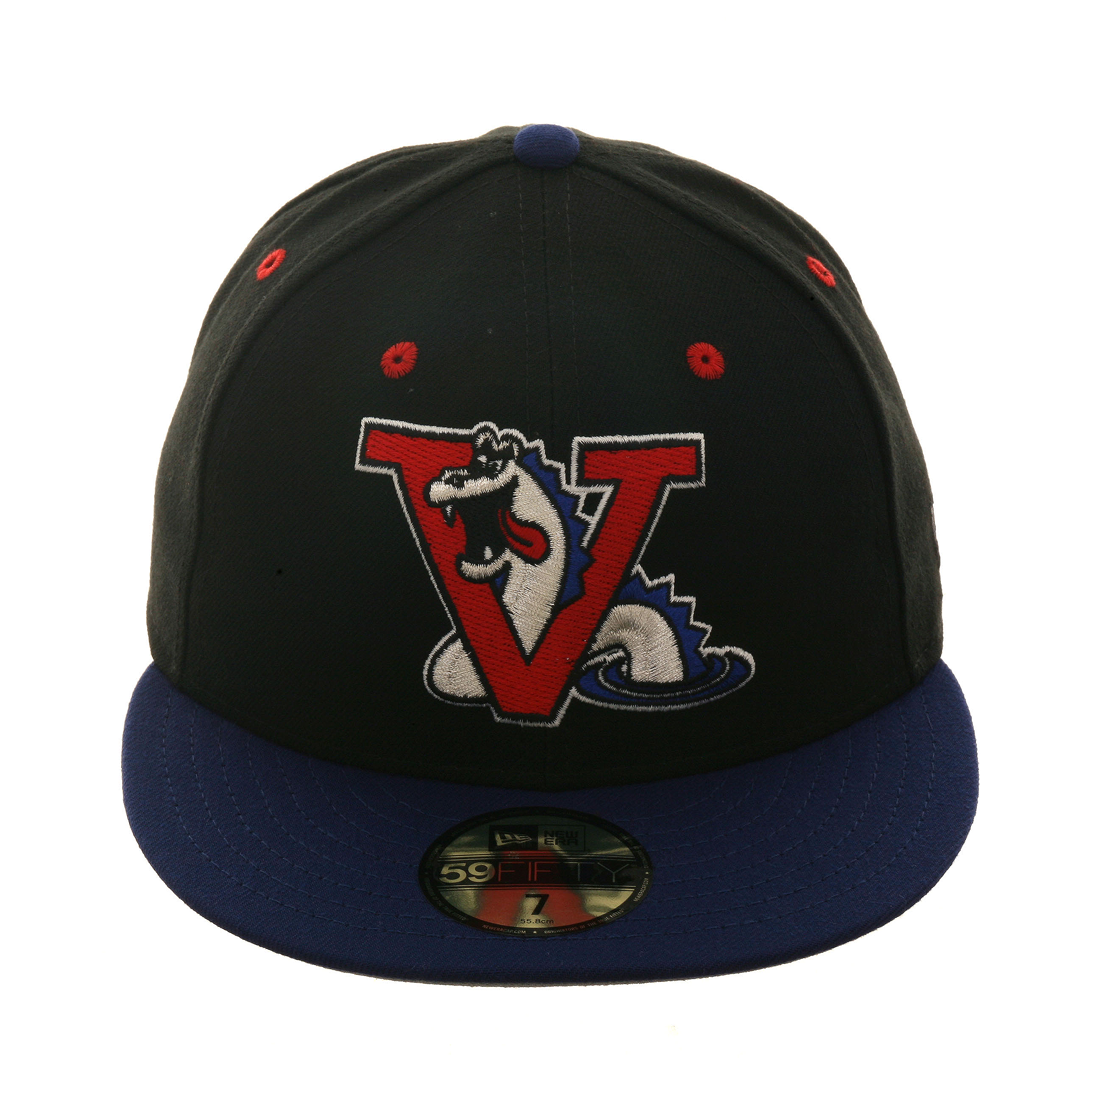 Exclusive New Era 59Fifty Vermont Expos Hat - 2T Black, Royal,